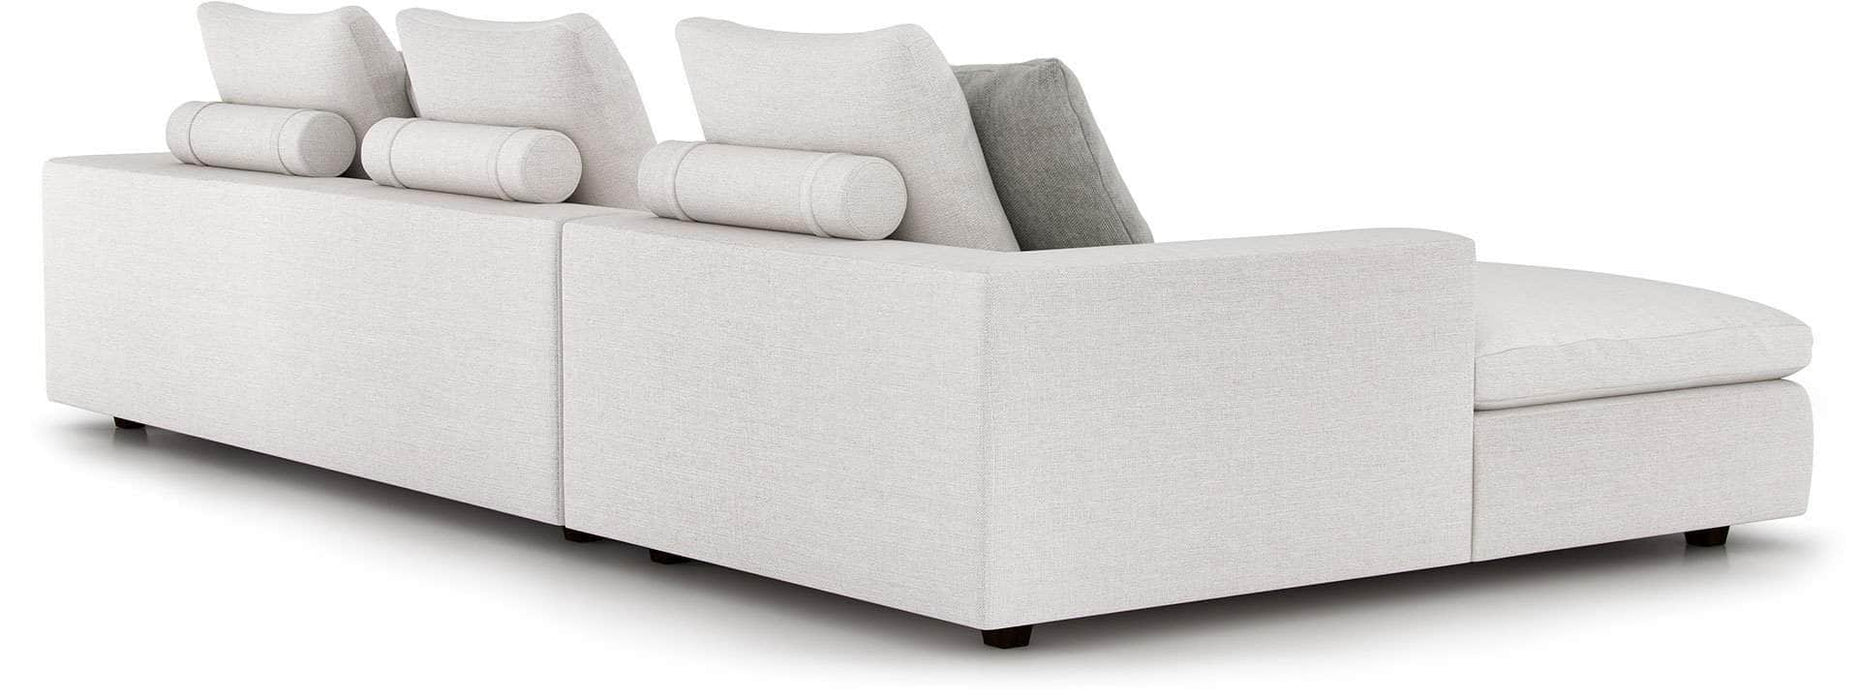 Lucerne Left Sectional Sofa in Ashen Fabric